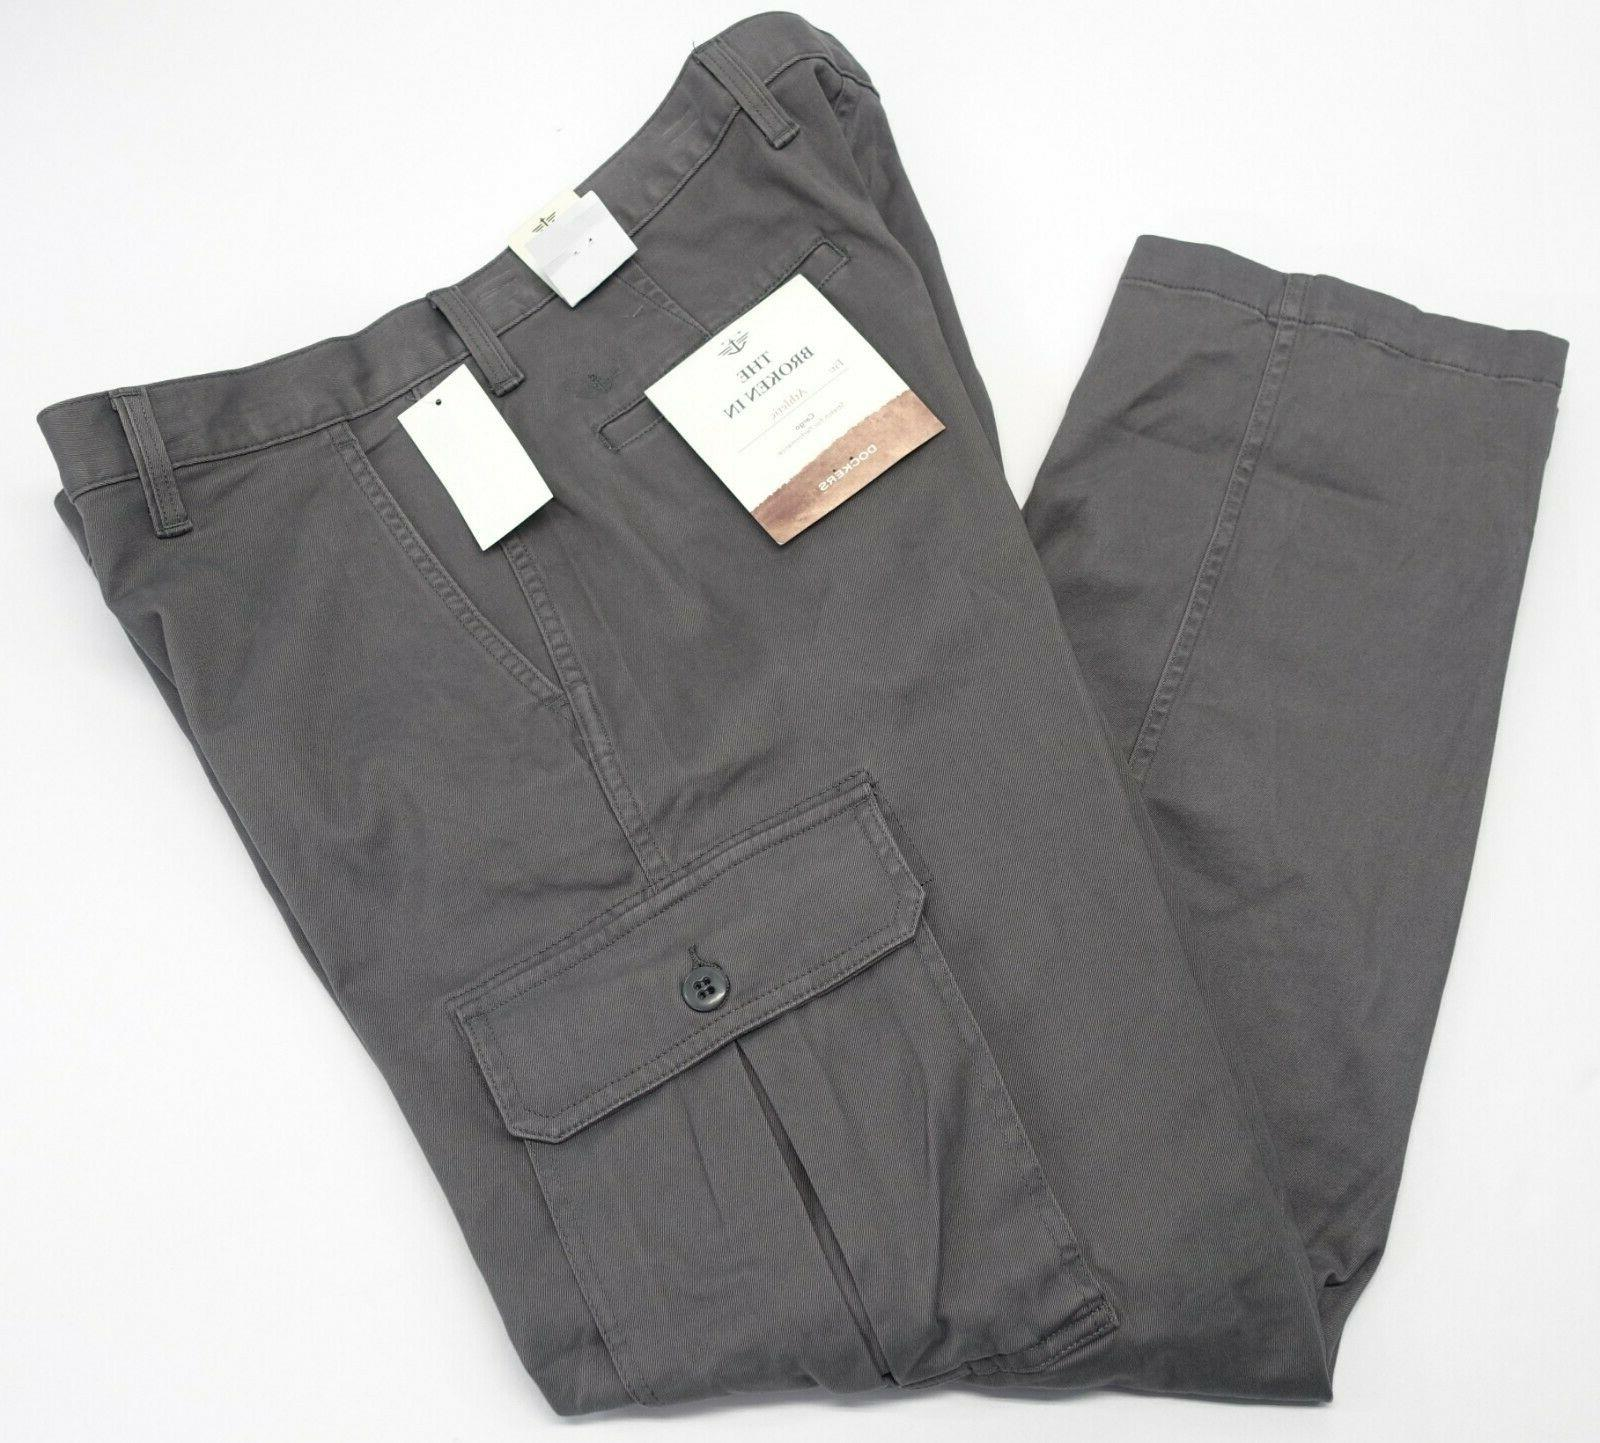 Mens Dockers Cargo Pants 30x32 Athletic Fit Stretch Performa